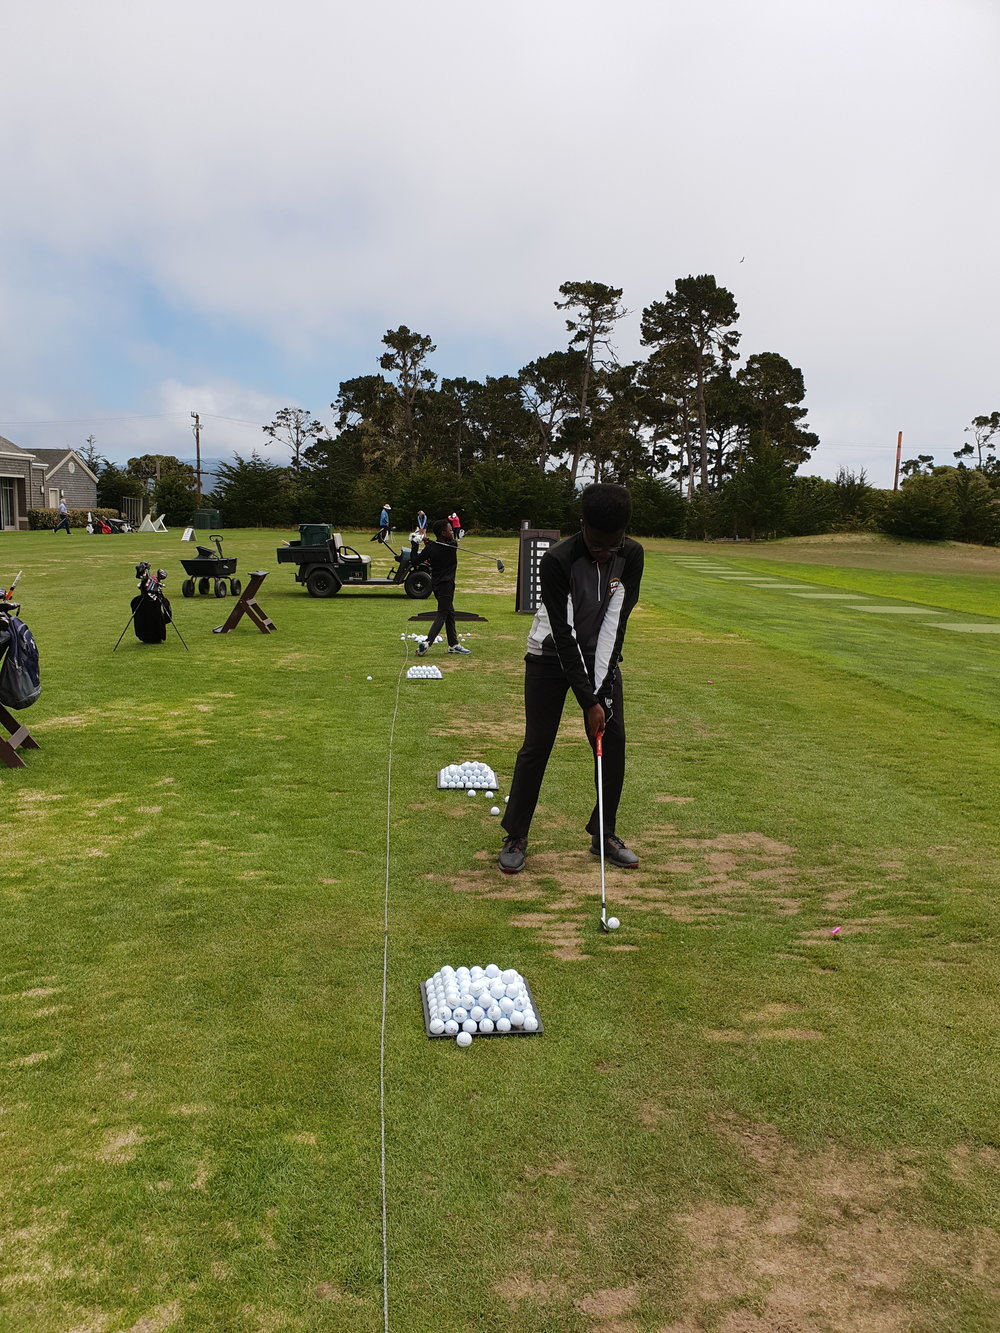 2018 Driving Range Pebble beach GC